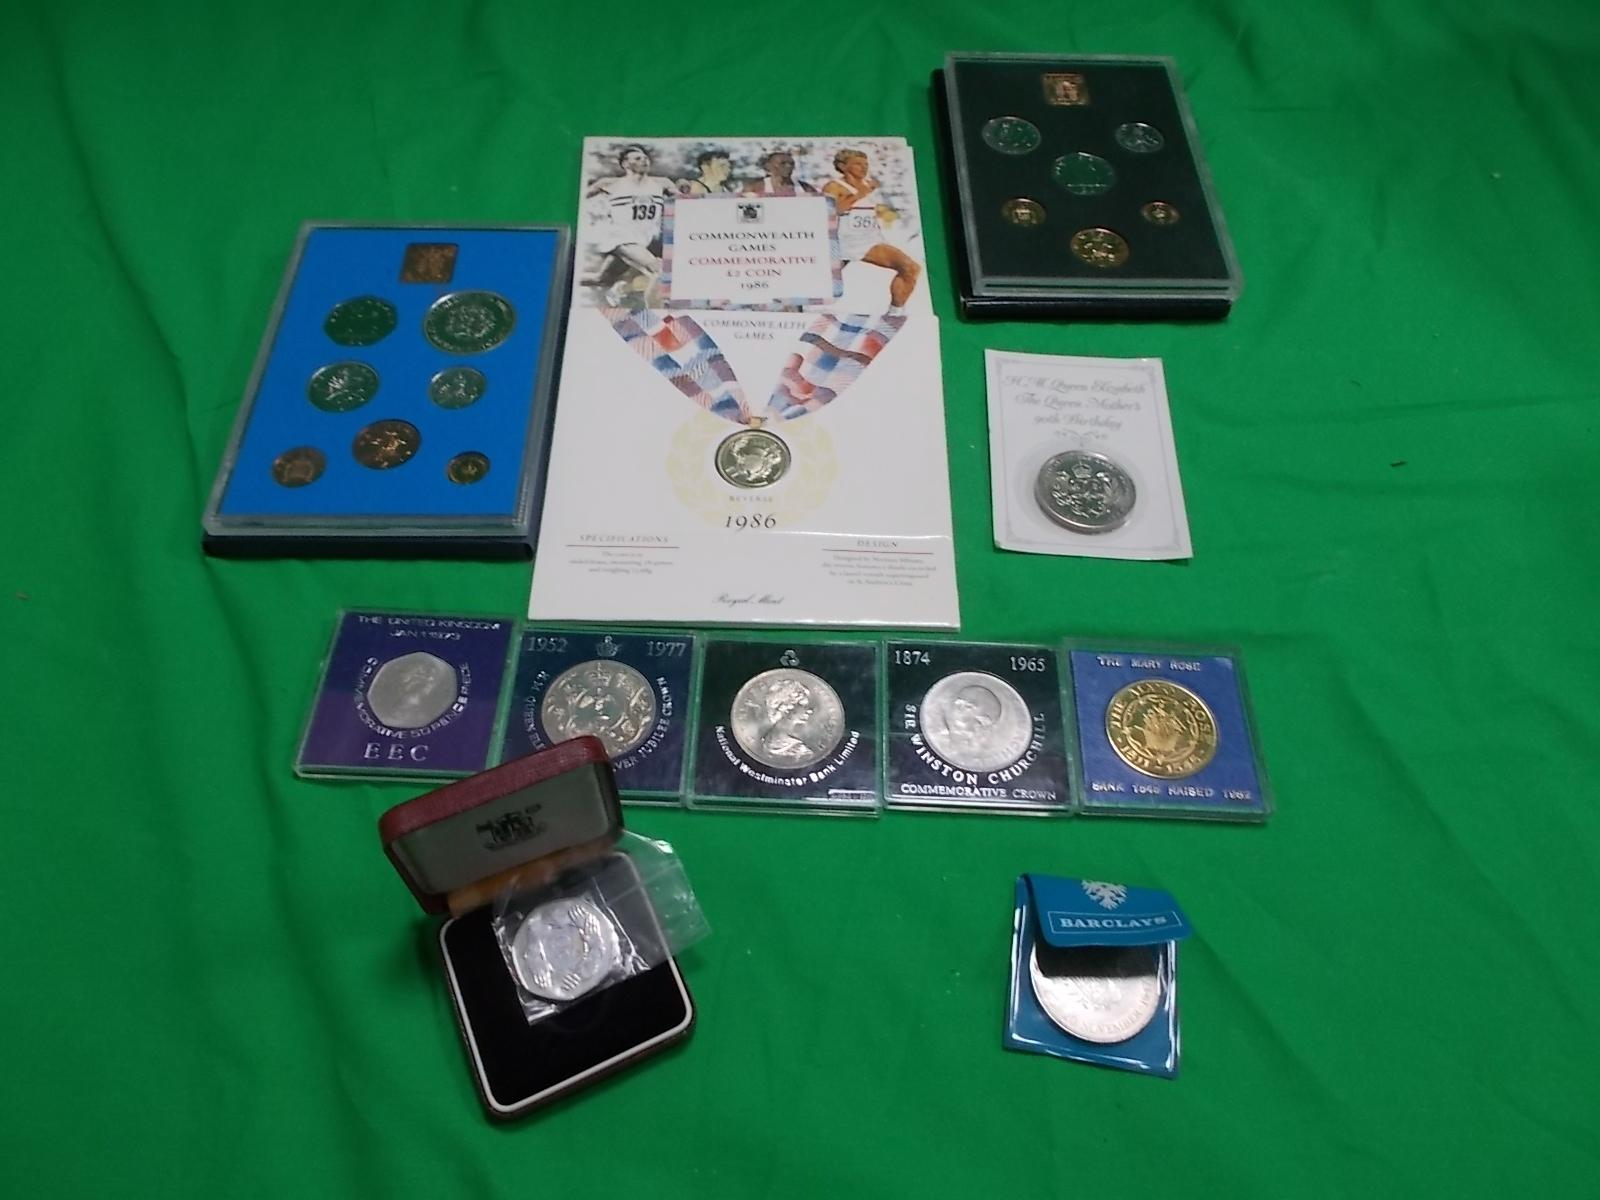 Selection of commemorative coins to include Winston Churchill, the Mary Rose, commonwealth games etc.  image